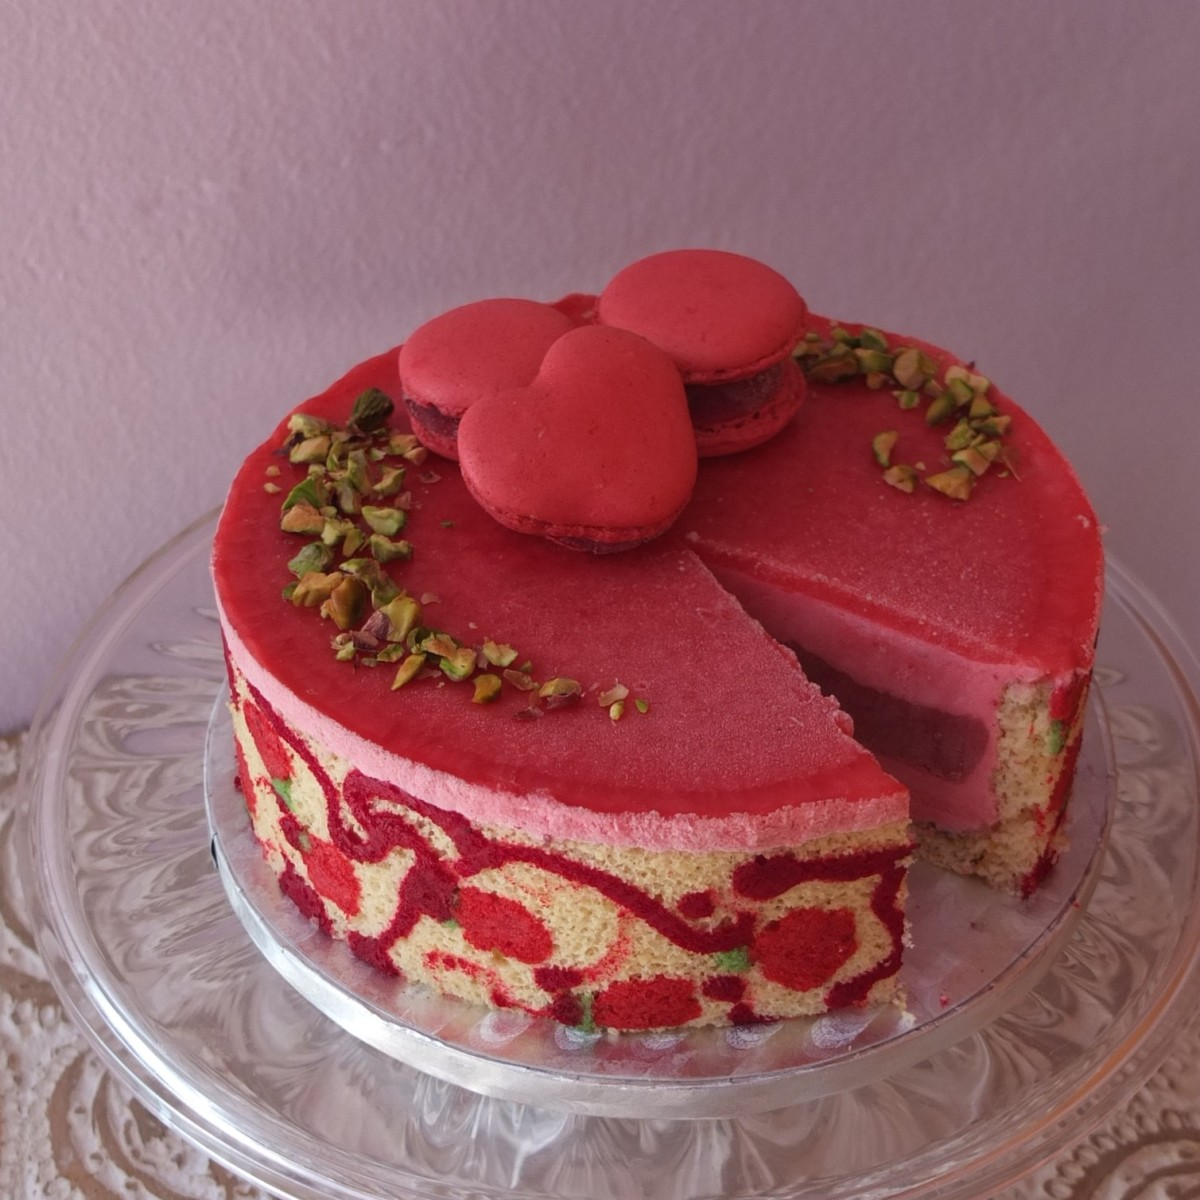 Ultra raspberry cloud mousse cake recipe!